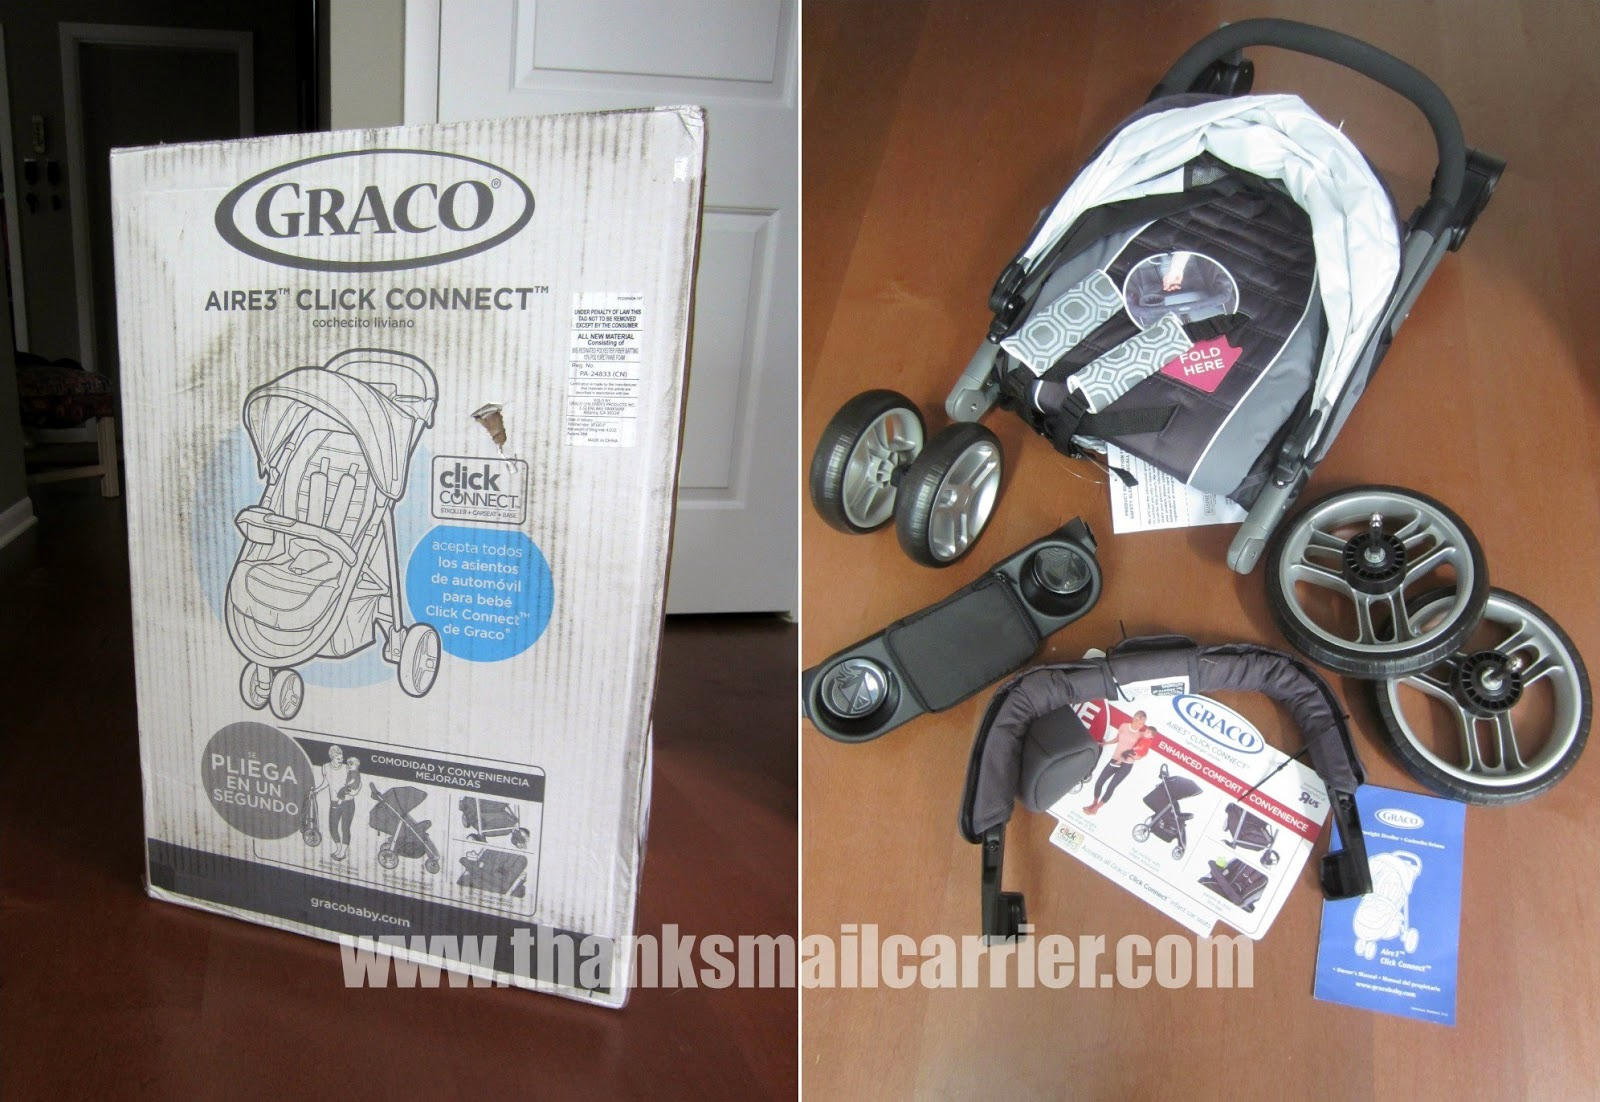 Graco Aire3 stroller assembly